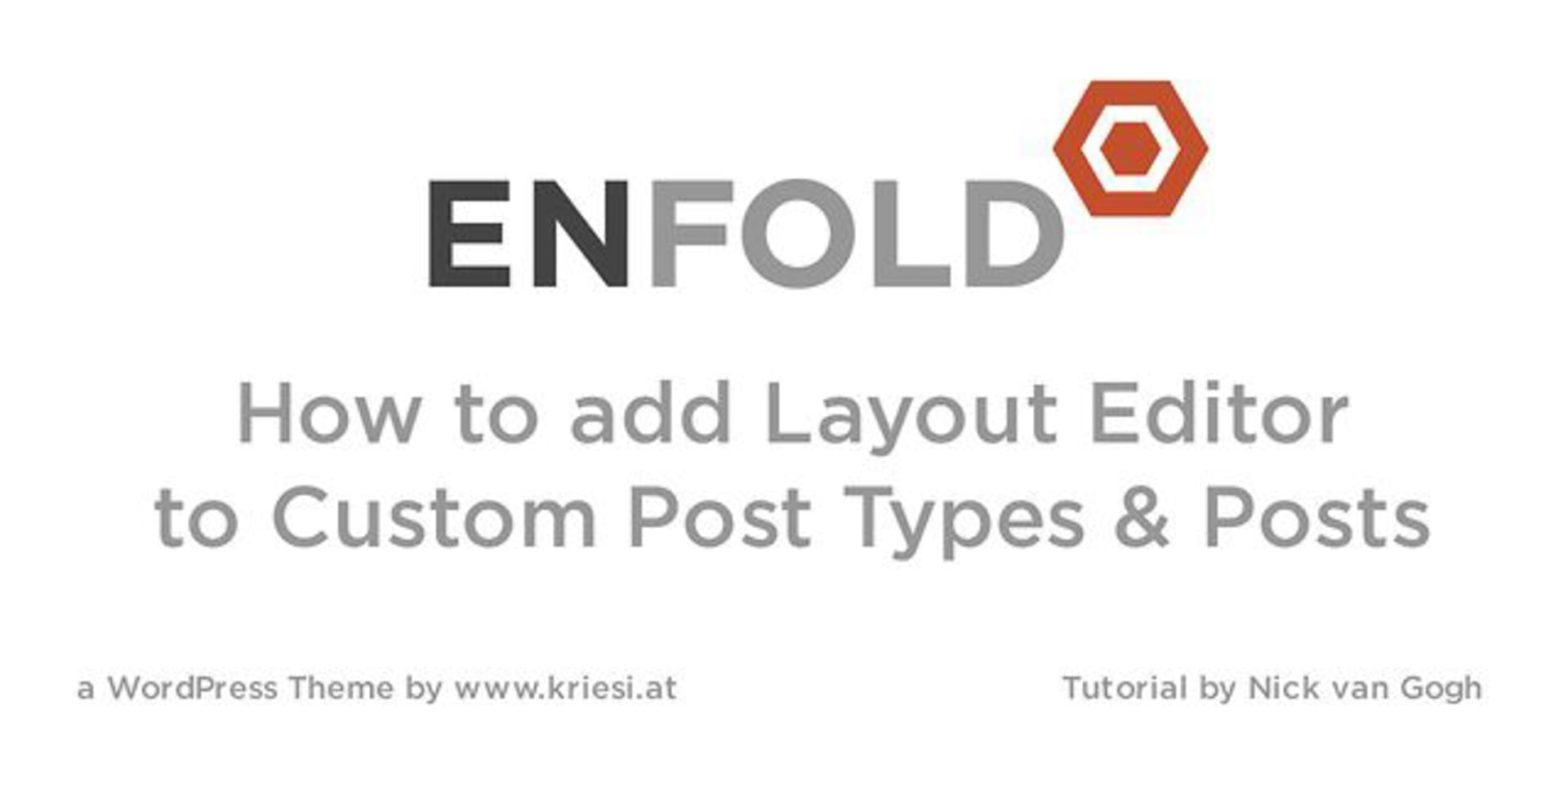 Enfold Theme Tutorial: Adding Layout Builder to Custom Post Types and Posts